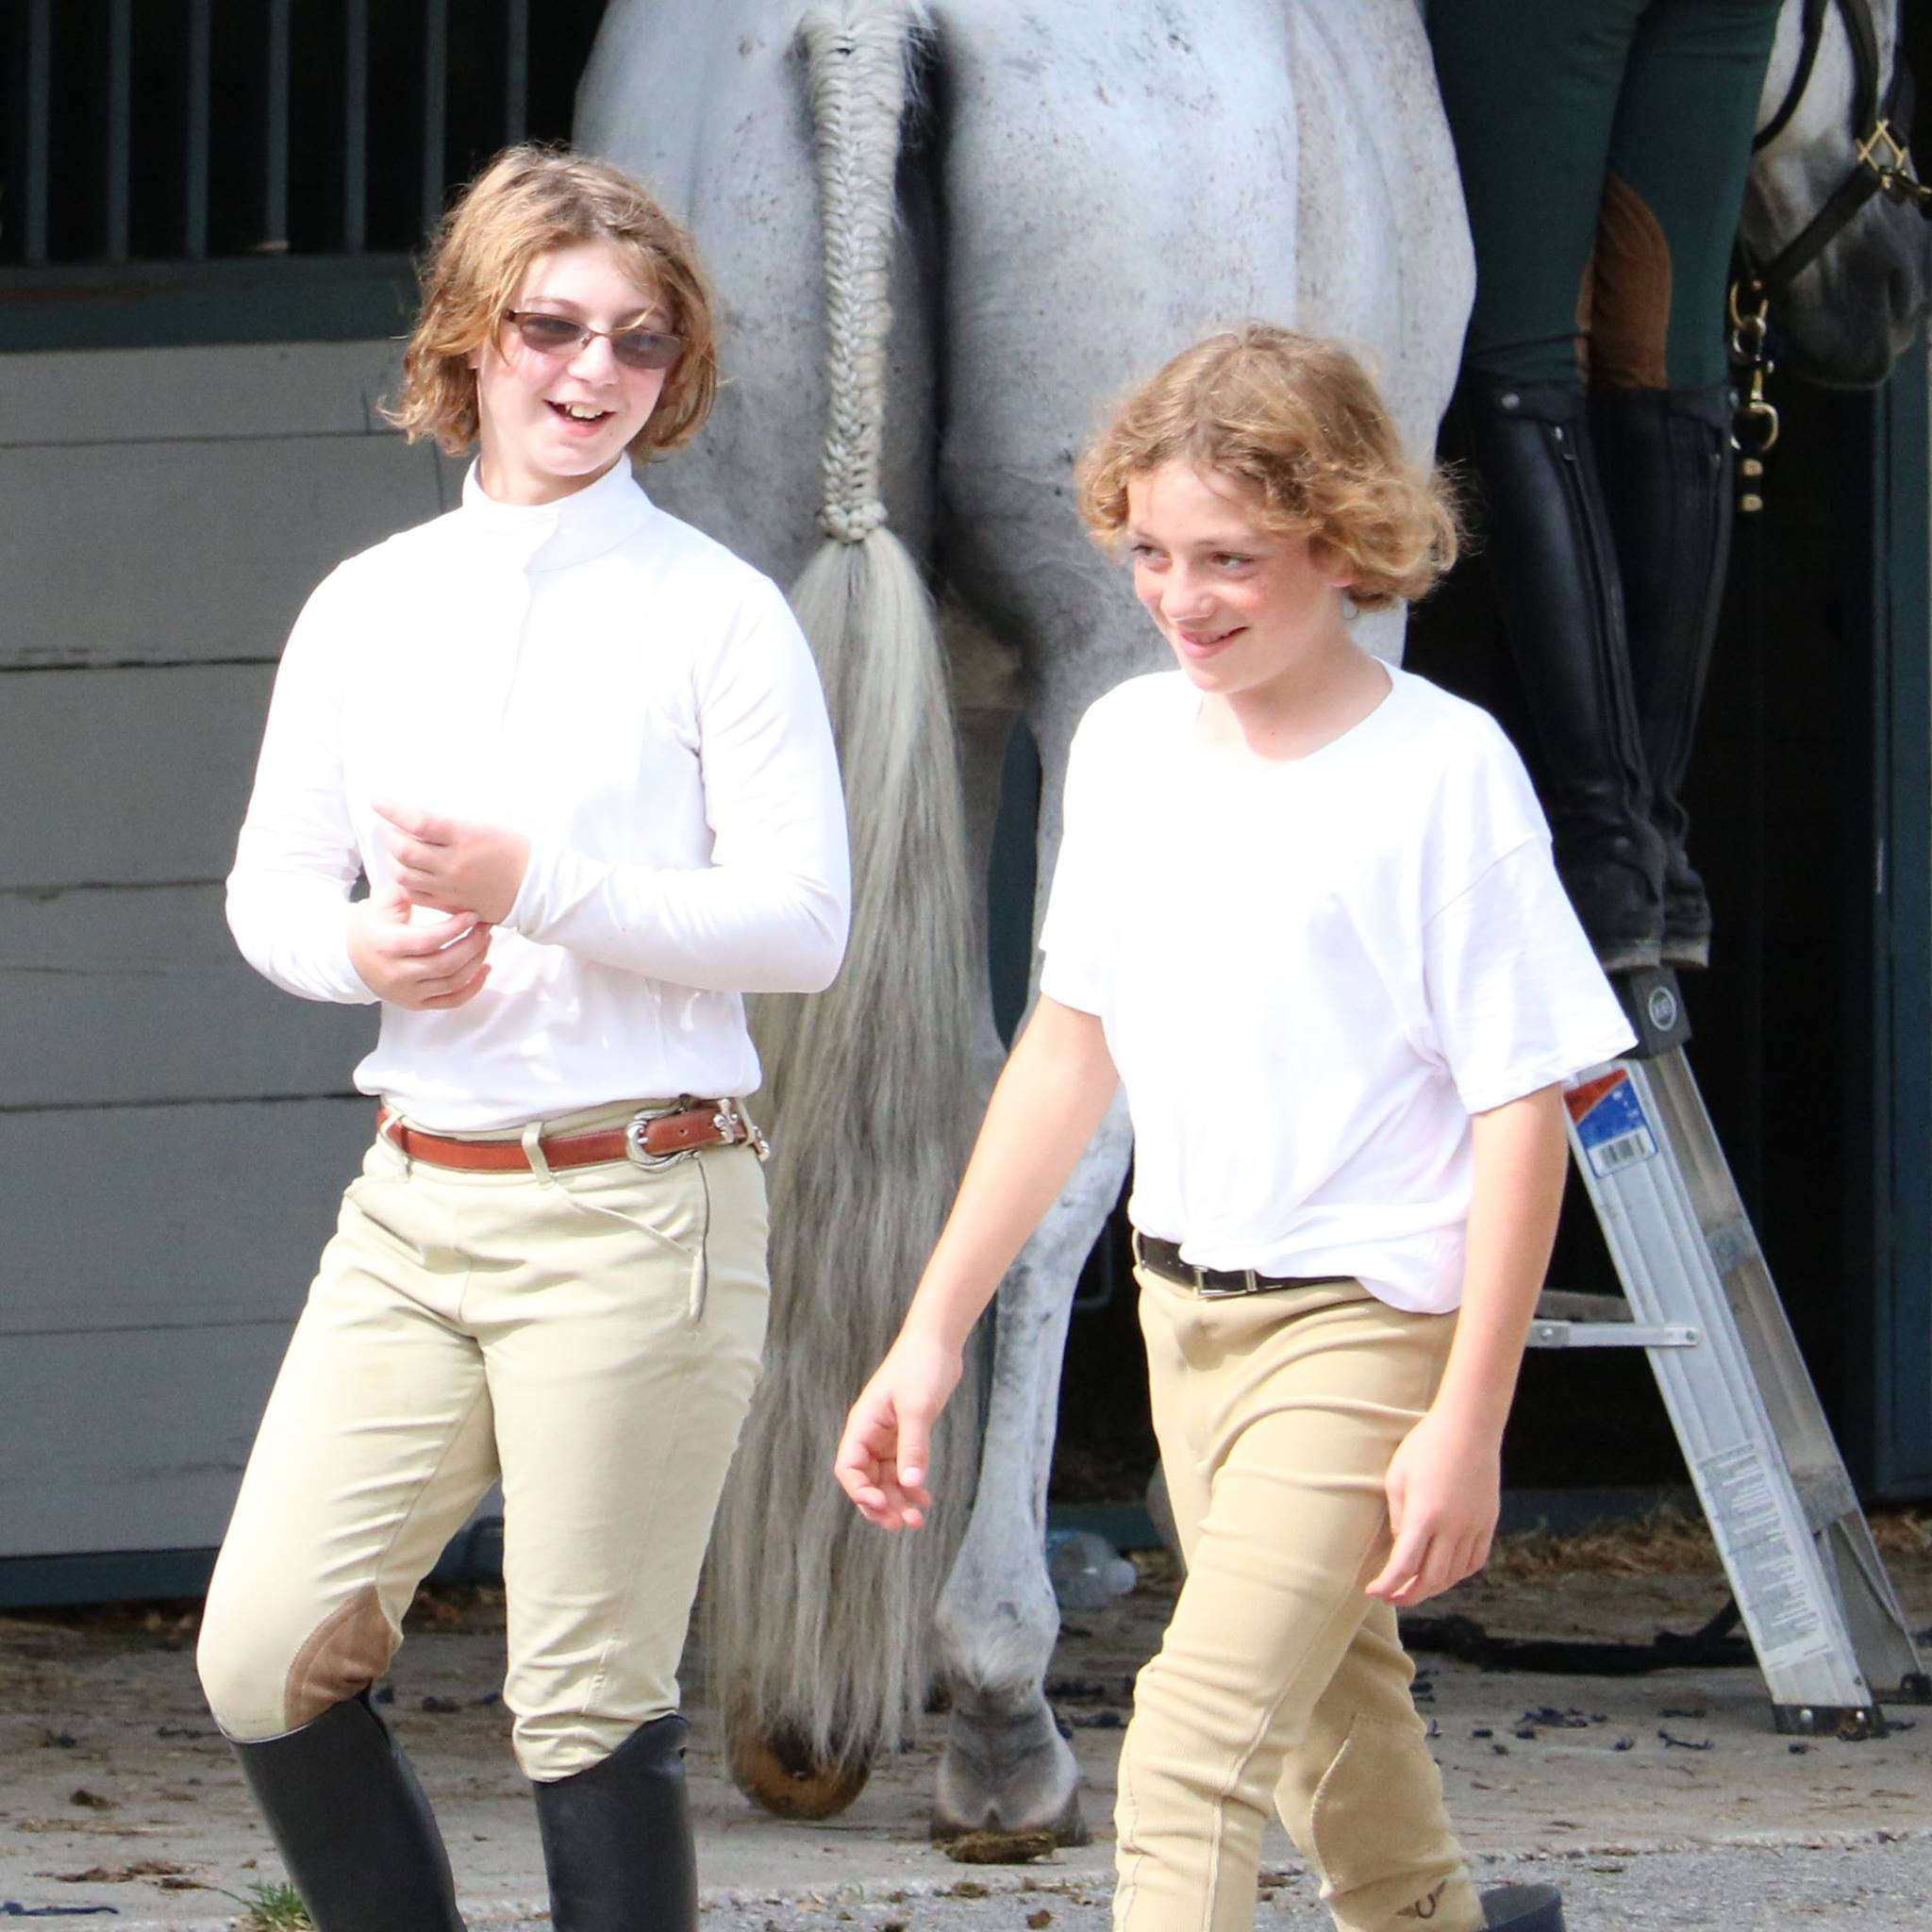 Equitation partners in crime...